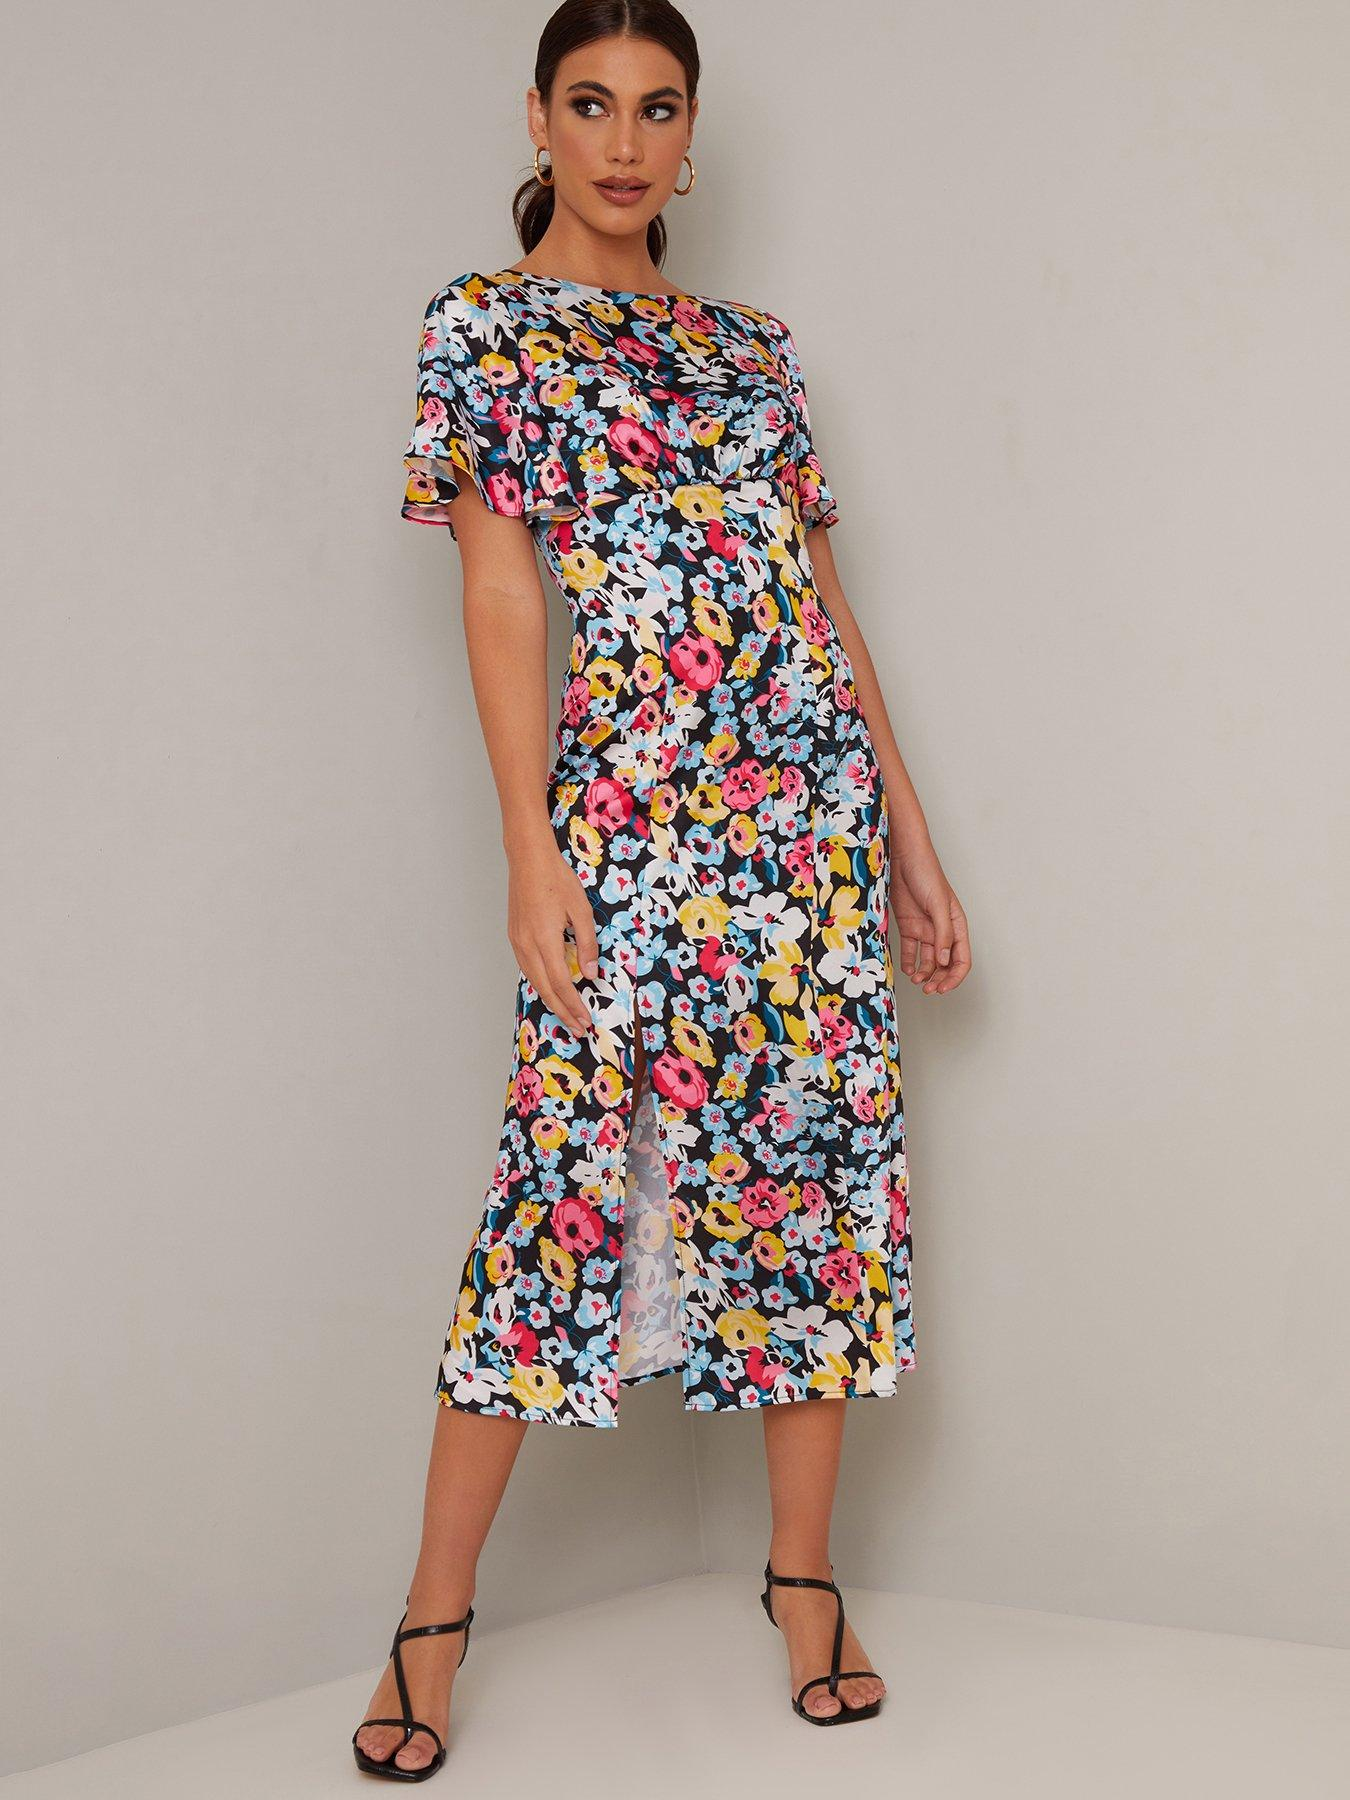 Hobbs elegant floral print layer dress in black 18 RRP £159